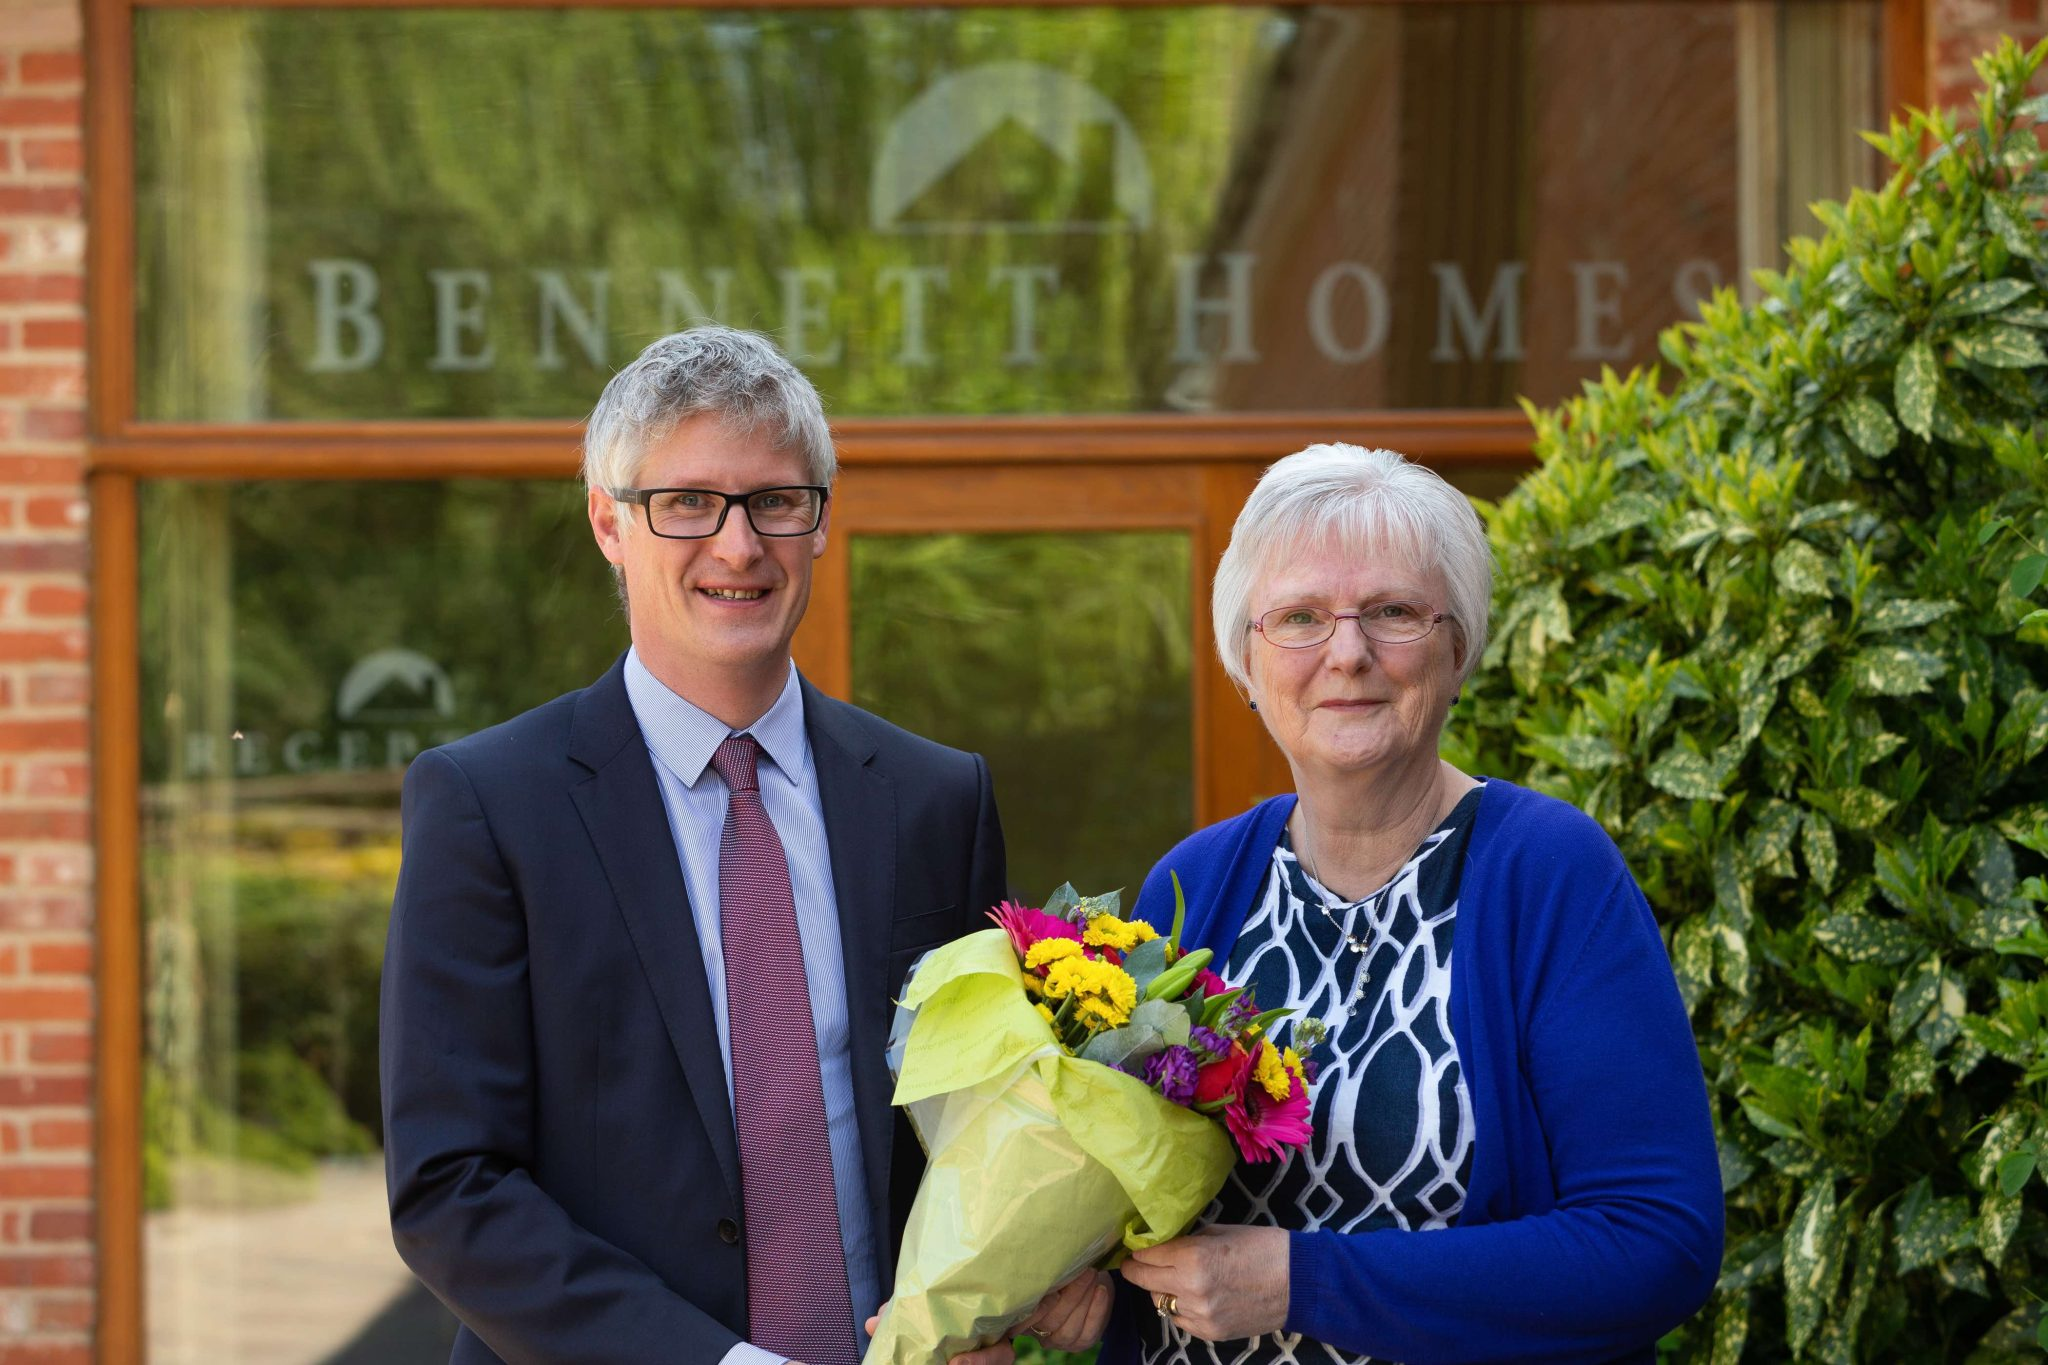 Denise retires after 50 years at Bennett Homes